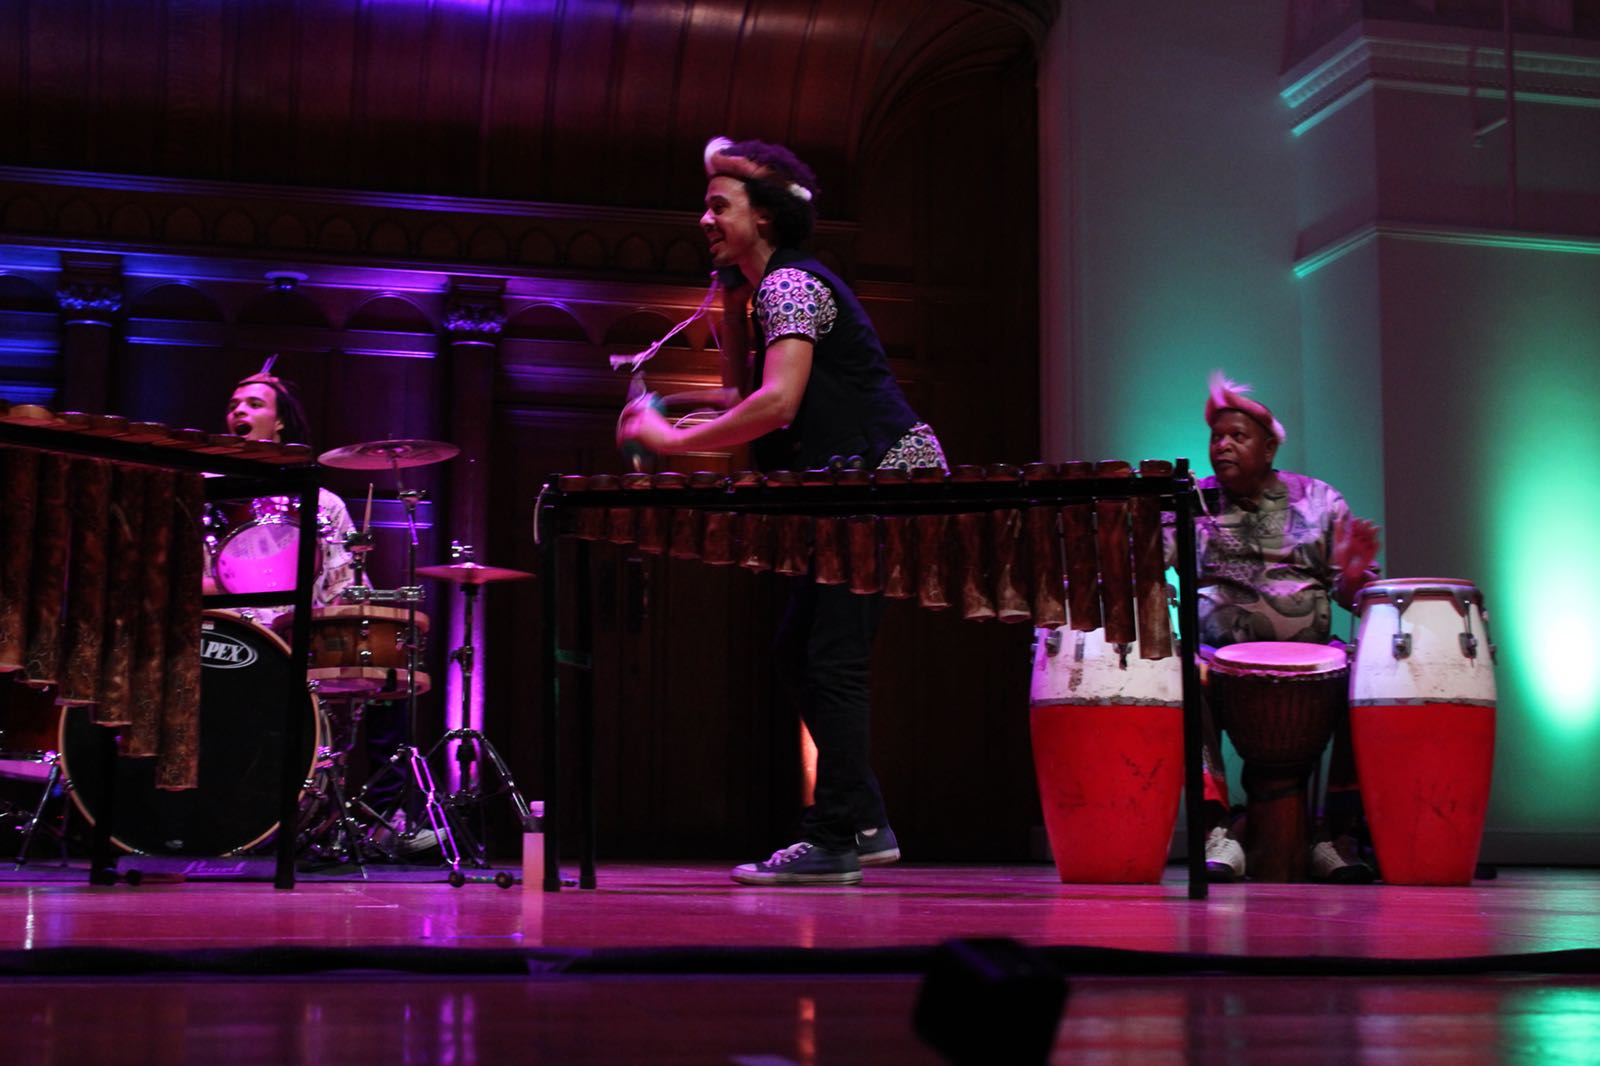 Cadogan Hall London - Panafrik - Otto Gumaelius & Taste of Southern Africa Marimba Band 5.JPG